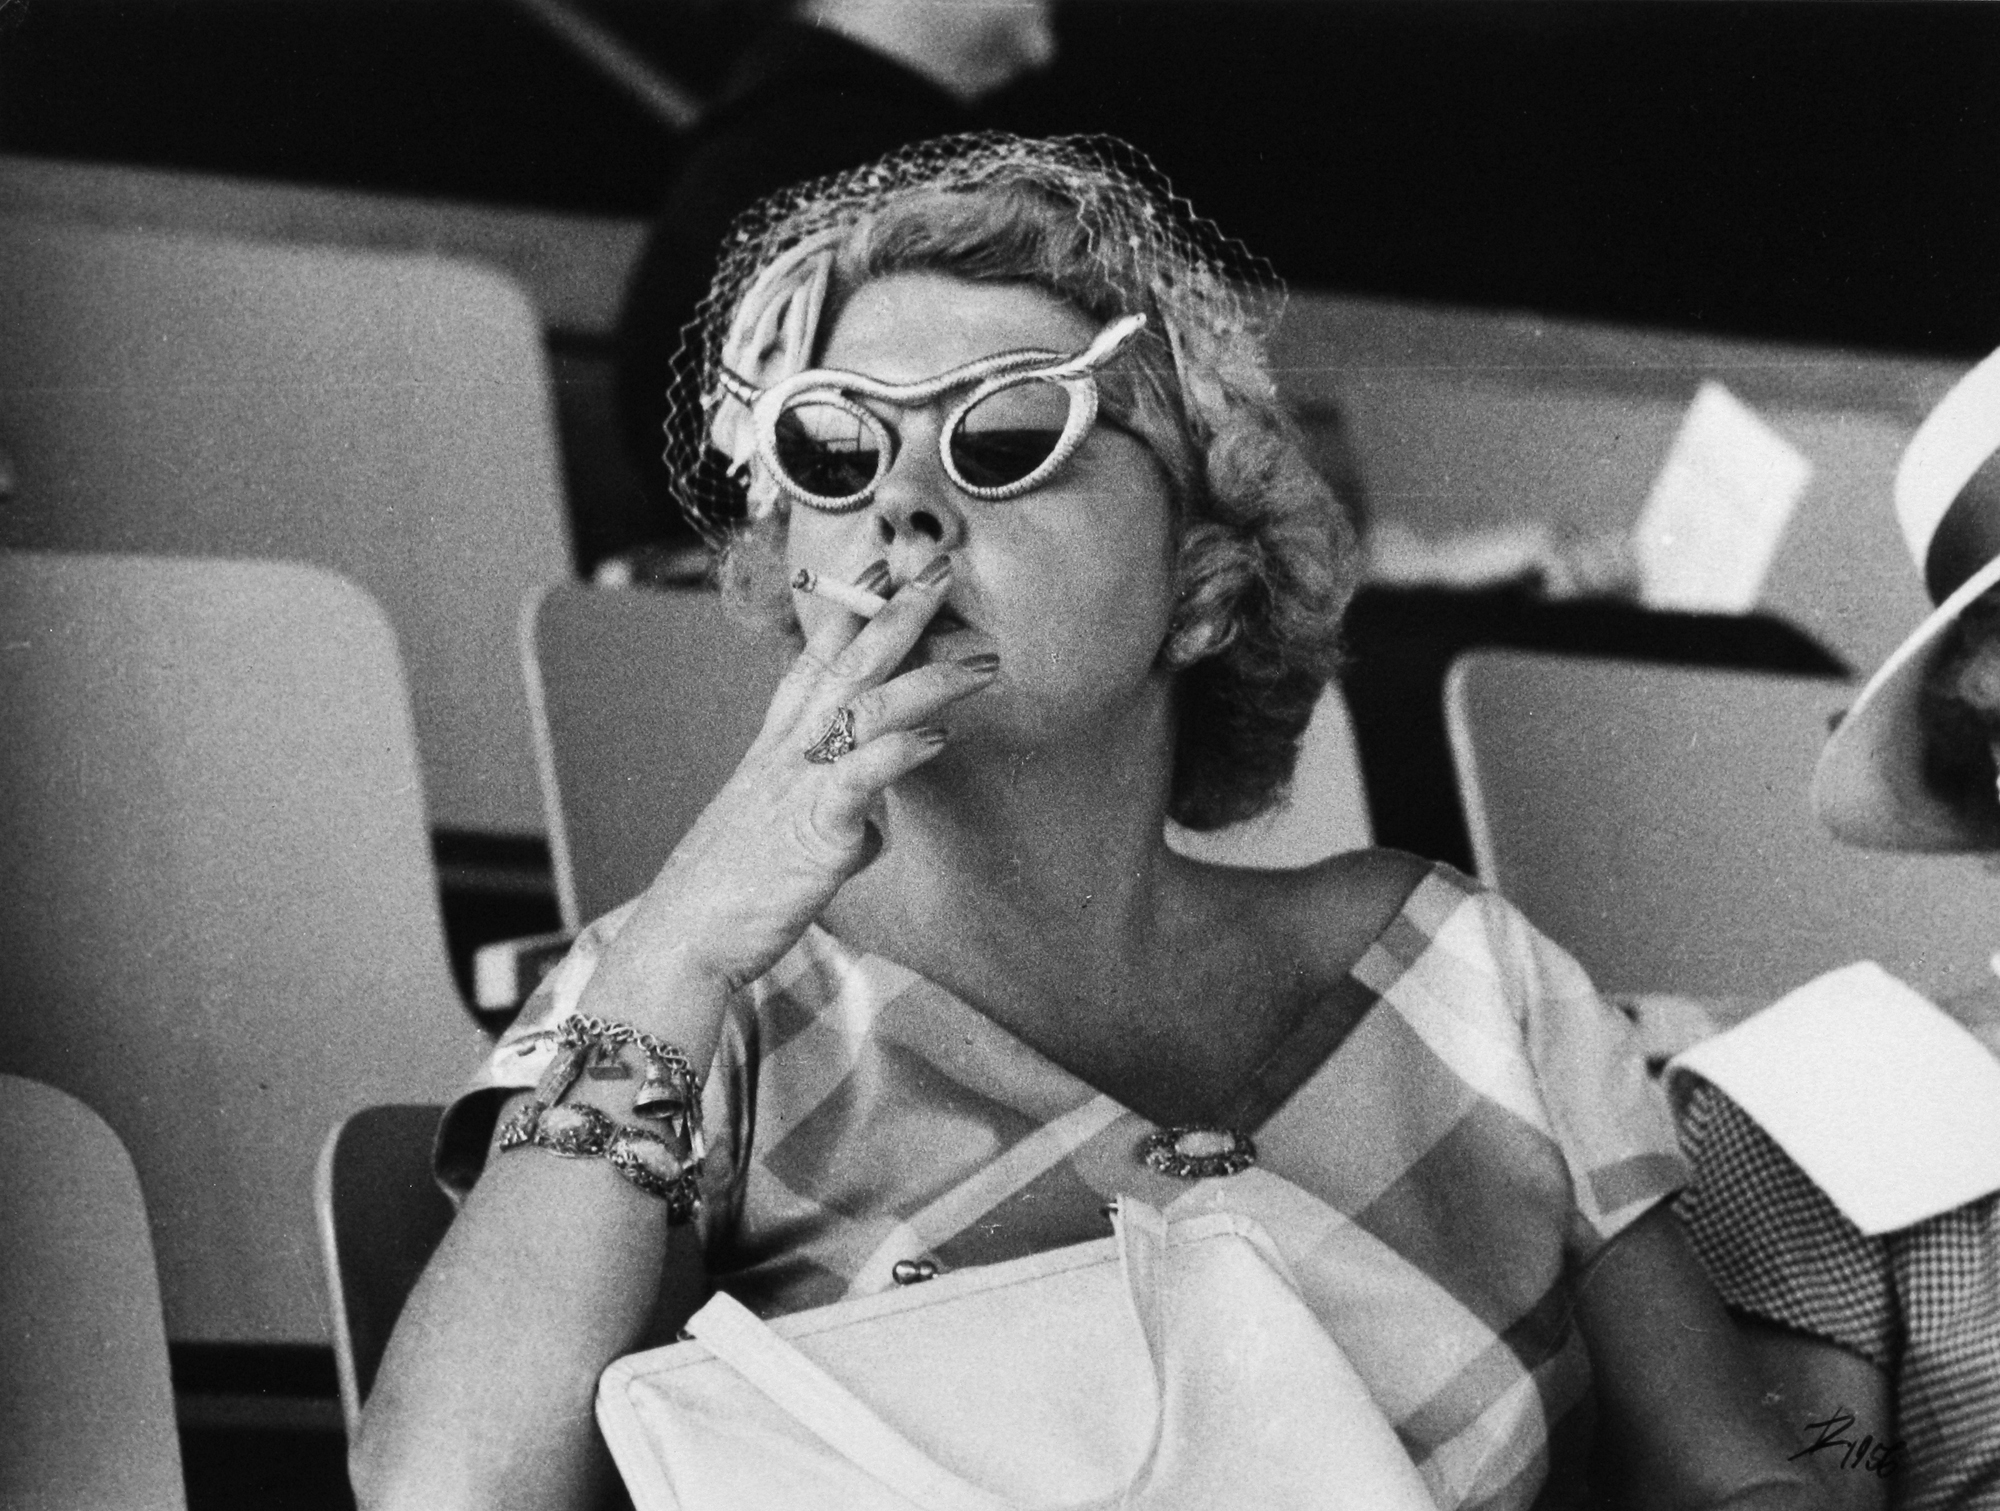 Woman sits in stands, wearing sunglasses and smoking a cigarette.